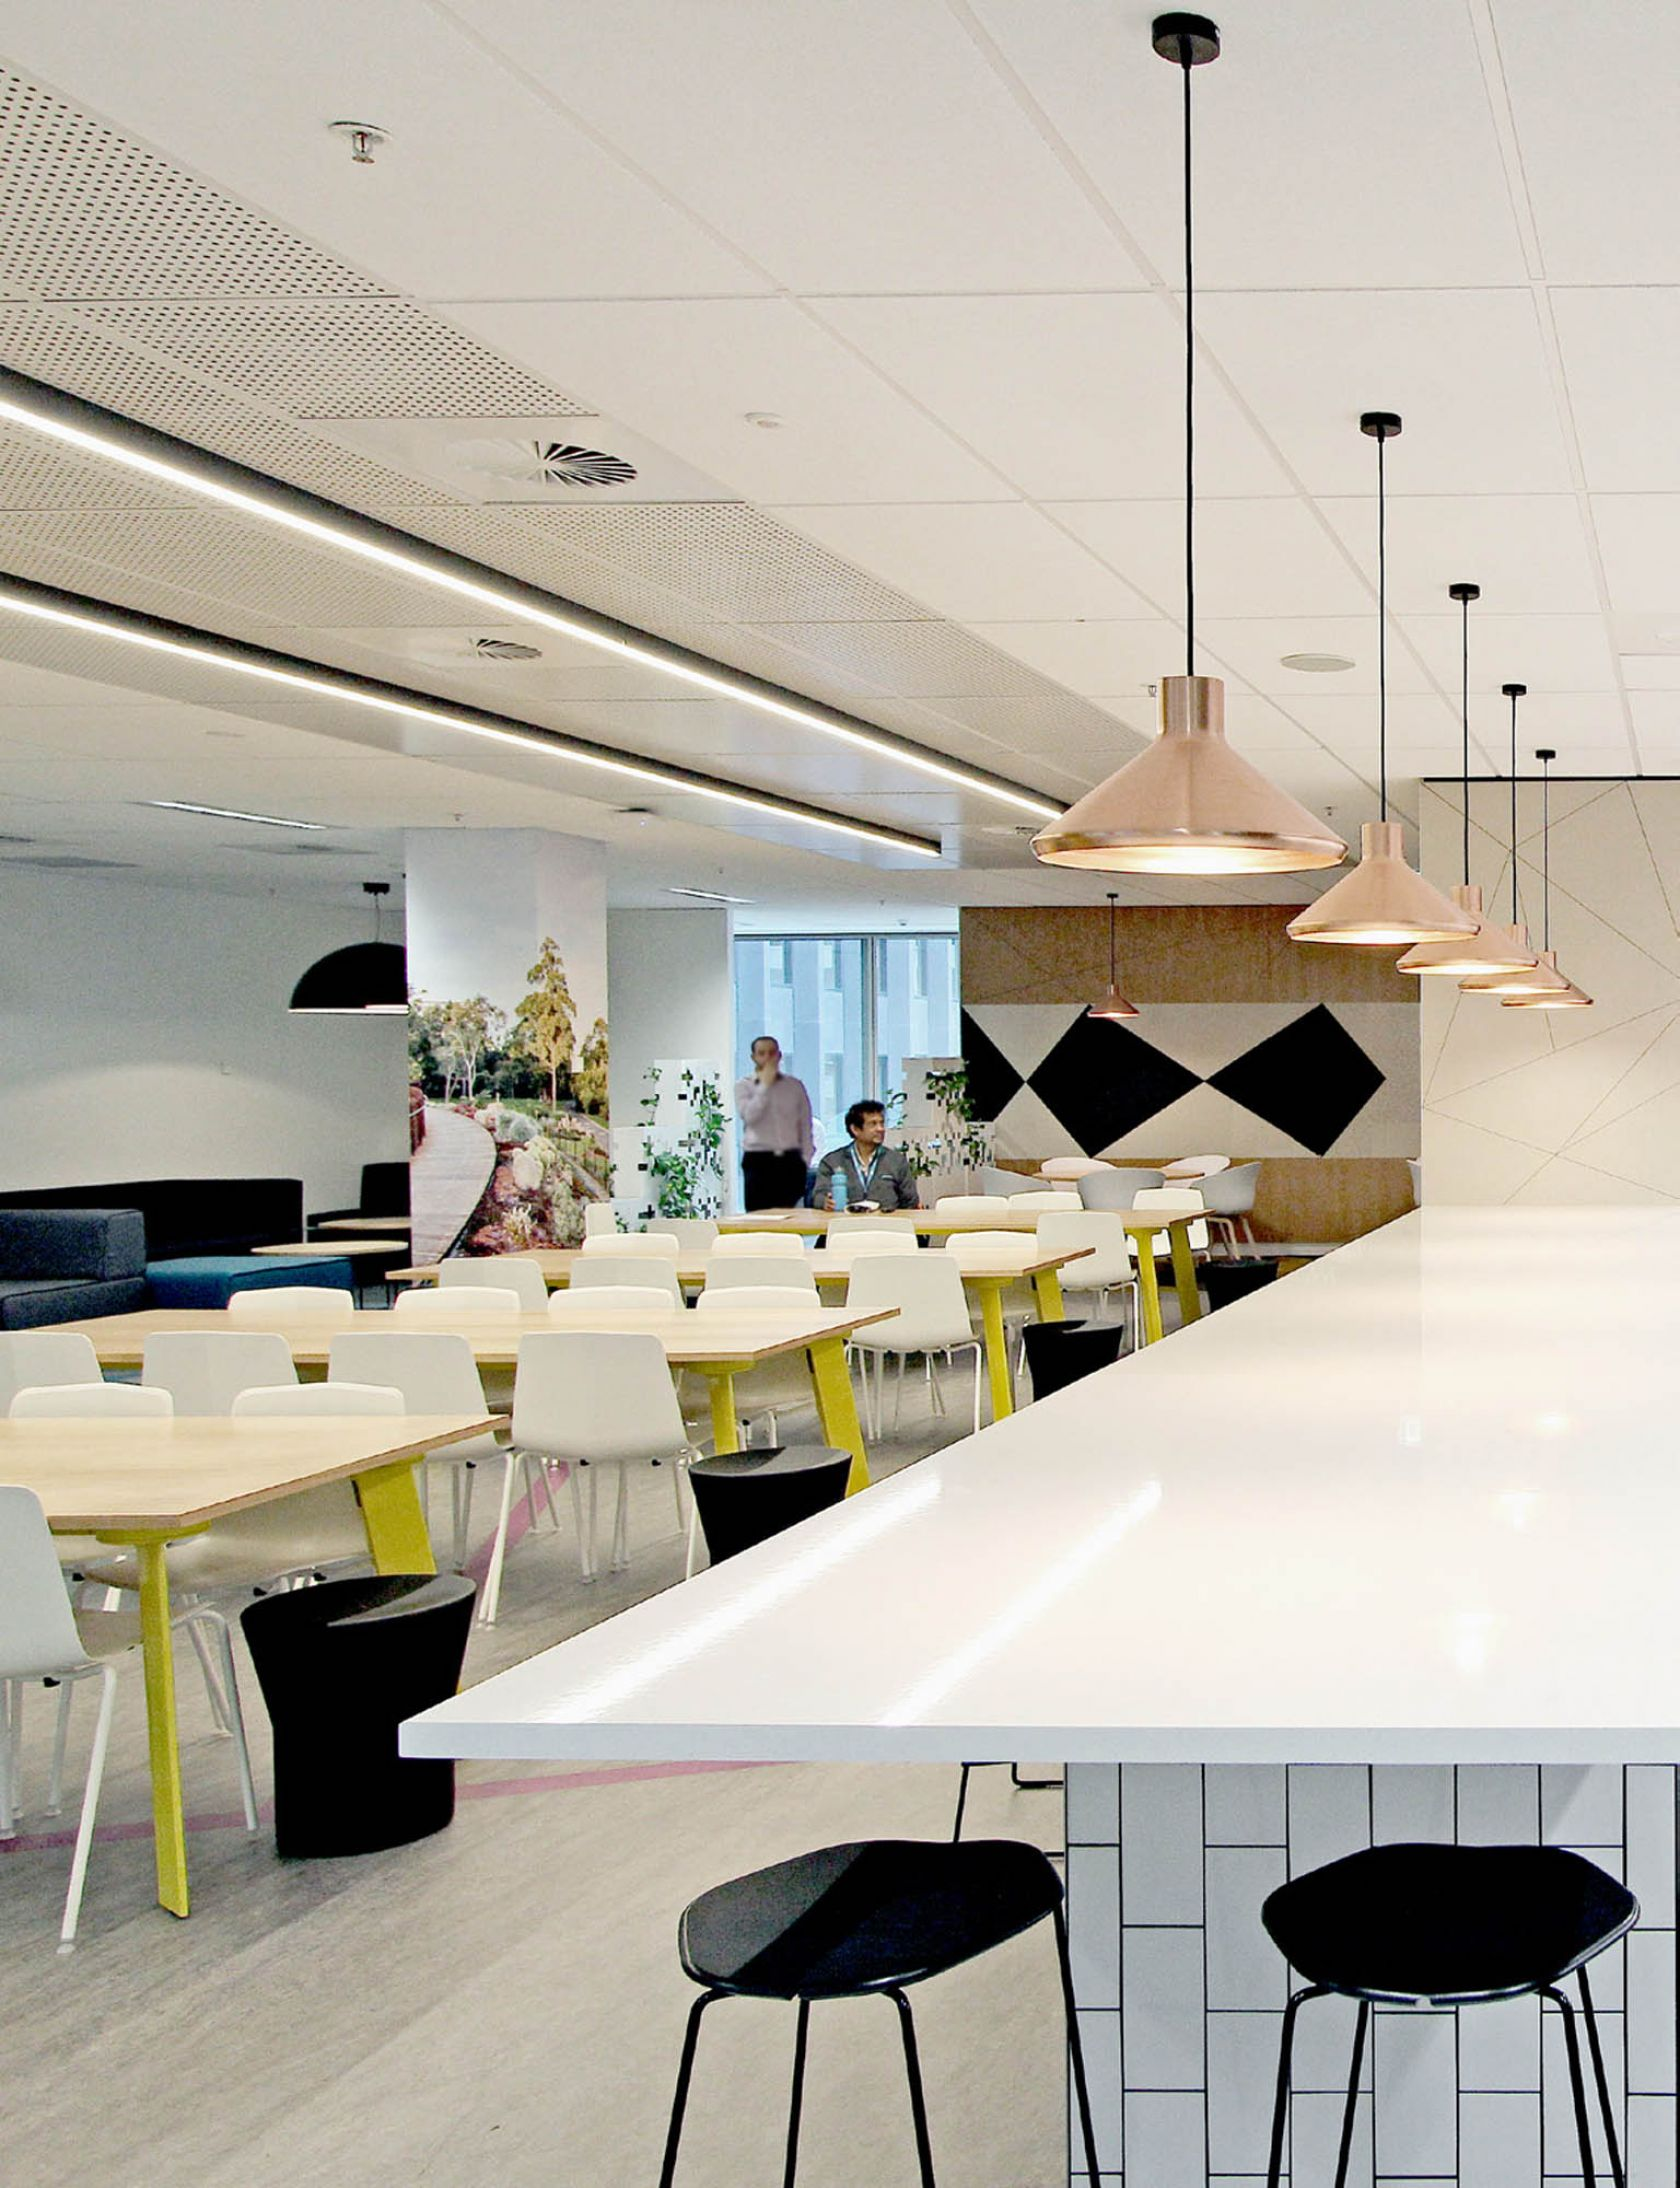 yarra trams melbourne office fitout kitchen bench seating